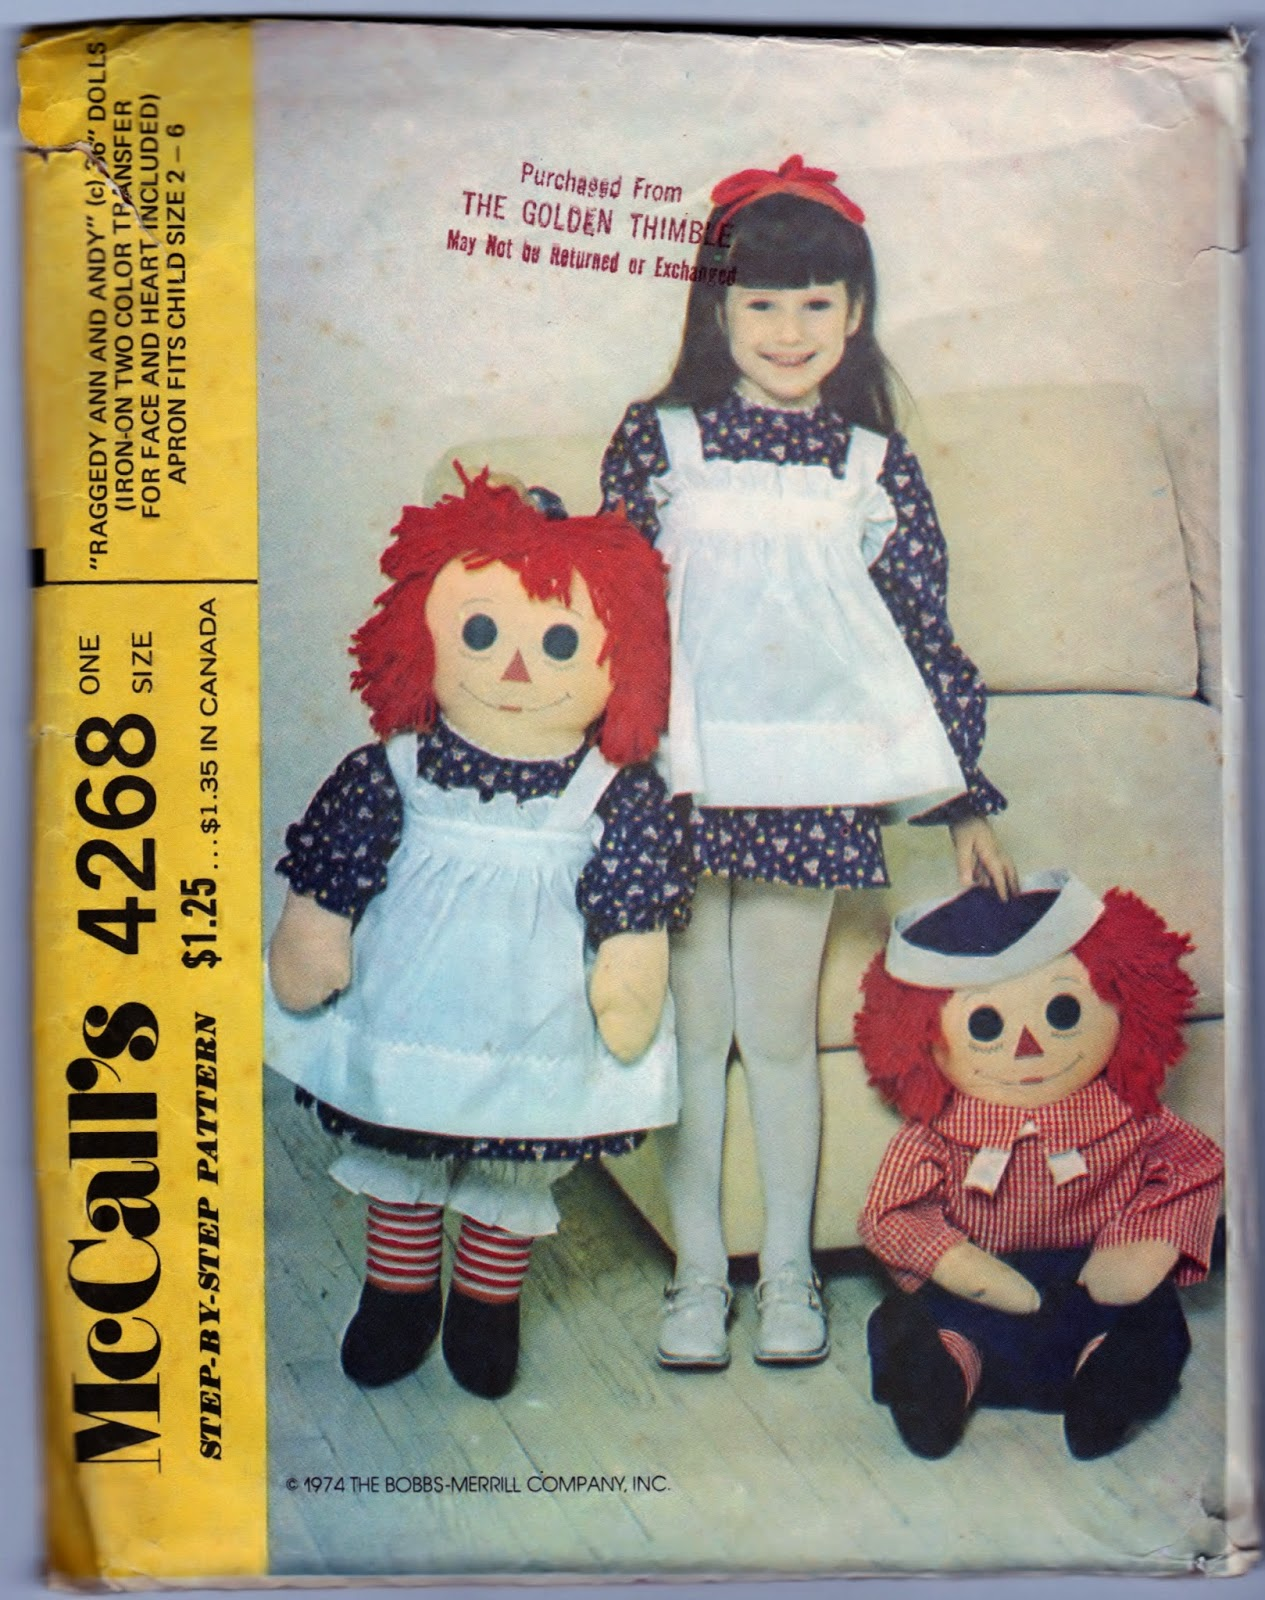 https://www.etsy.com/listing/128726456/raggedy-ann-and-andy?ref=shop_home_active_4